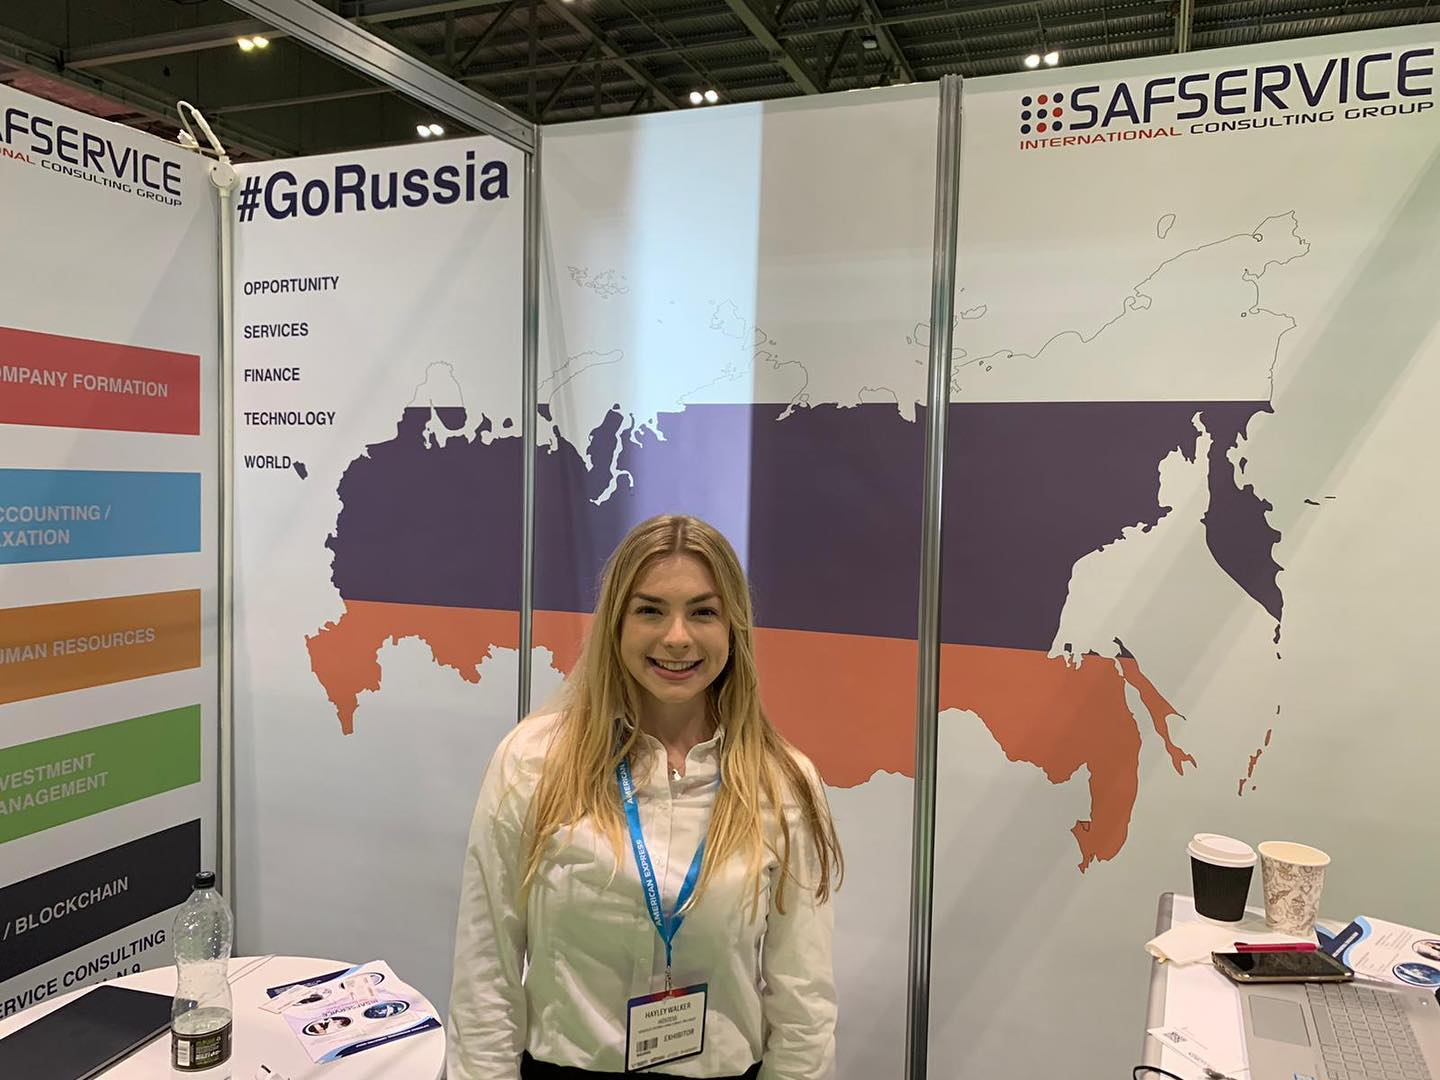 Exhibition Staff for hire at Going Global 2019 at ExCel London